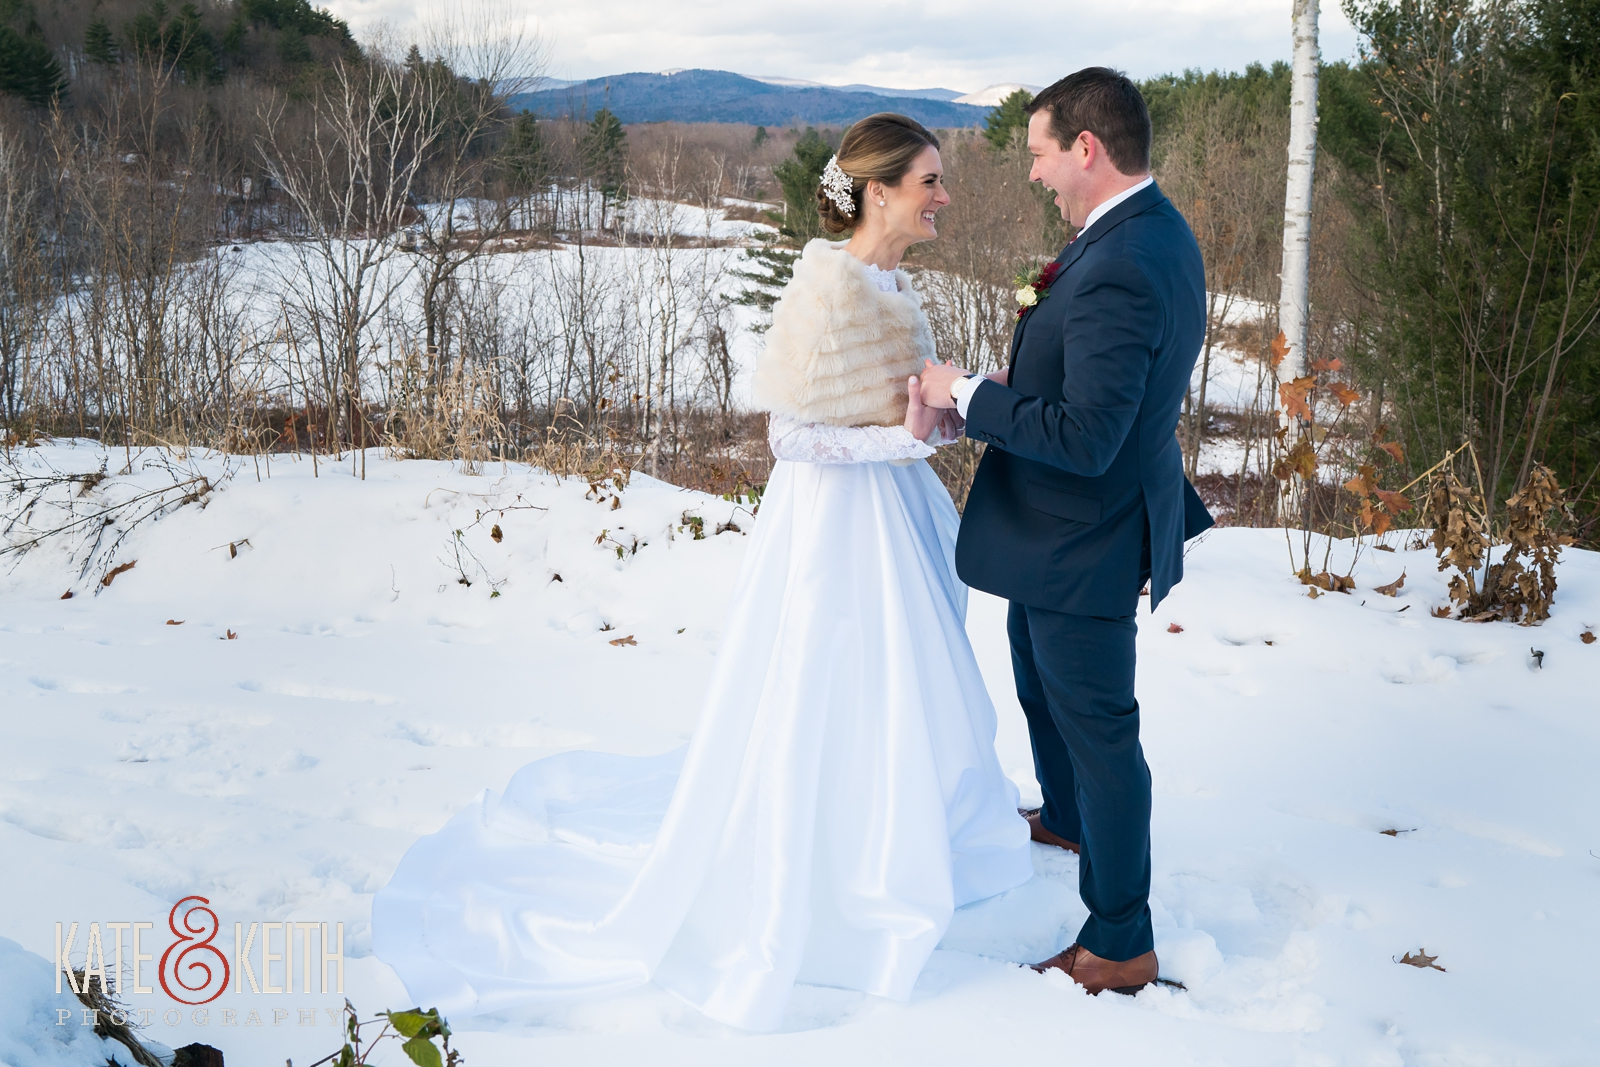 Barn on the Pemi, Your Dreams Bridal shop, Men's Warehouse, Joseph Abud, First look, wedding first look, snow, winter wedding, candid moment, fur wrap, winter wedding dress, long sleeved winter wedding dress, cold weather wedding, bride and groom first look laughing, navy suit